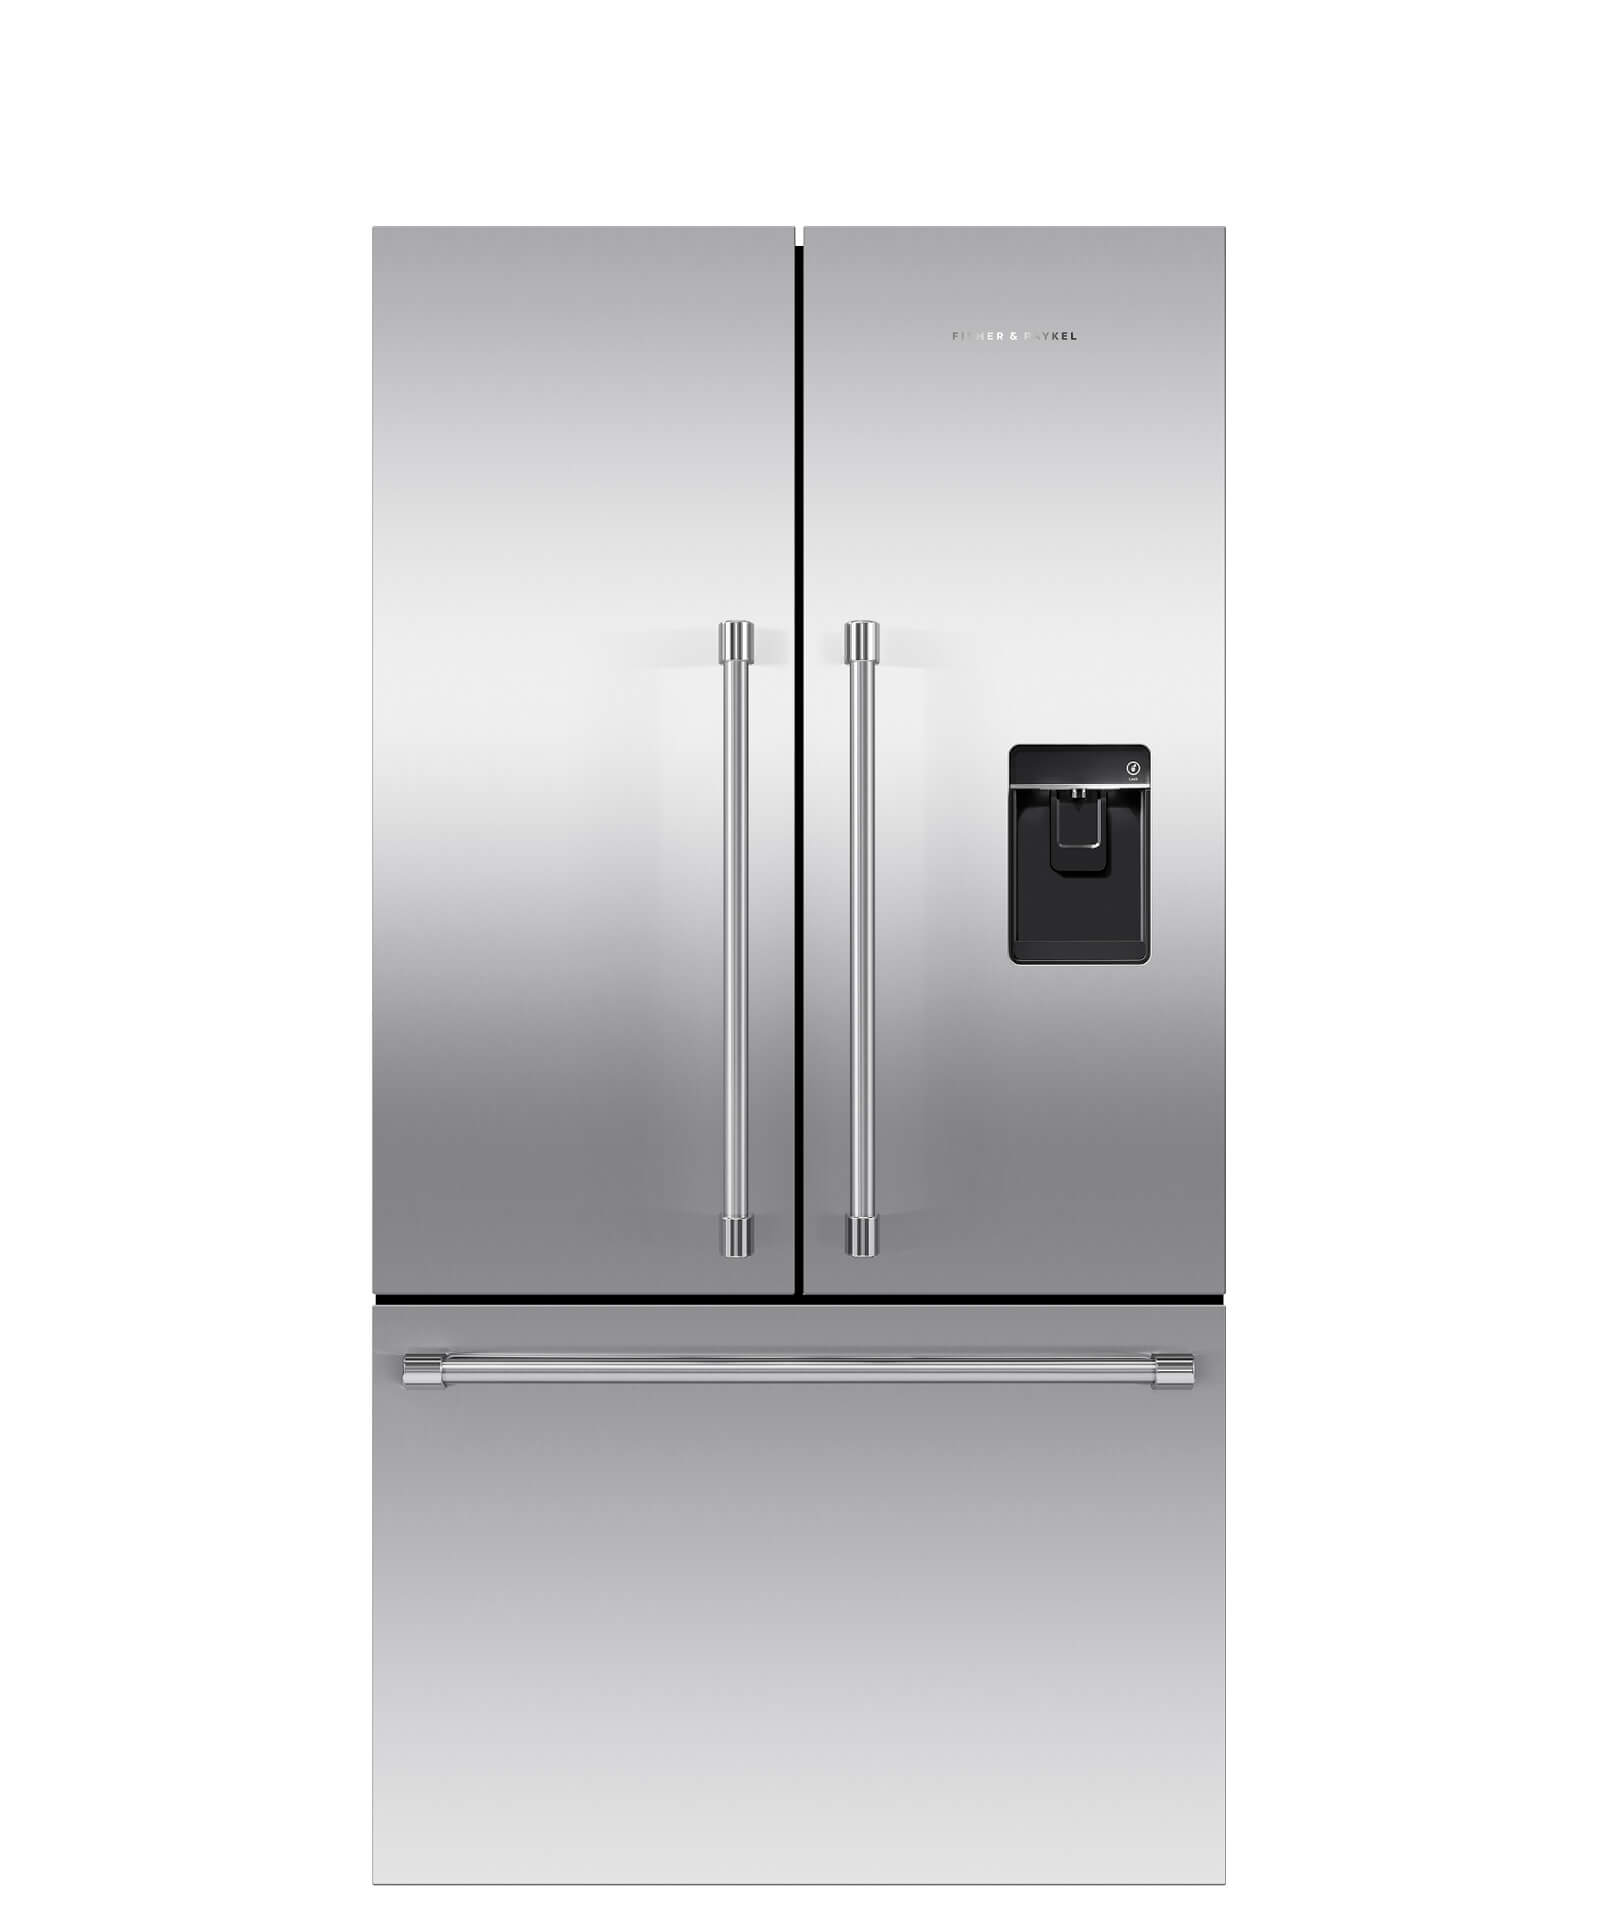 Fisher and Paykel French Door Refrigerator 20.1 cu ft, Ice & Water